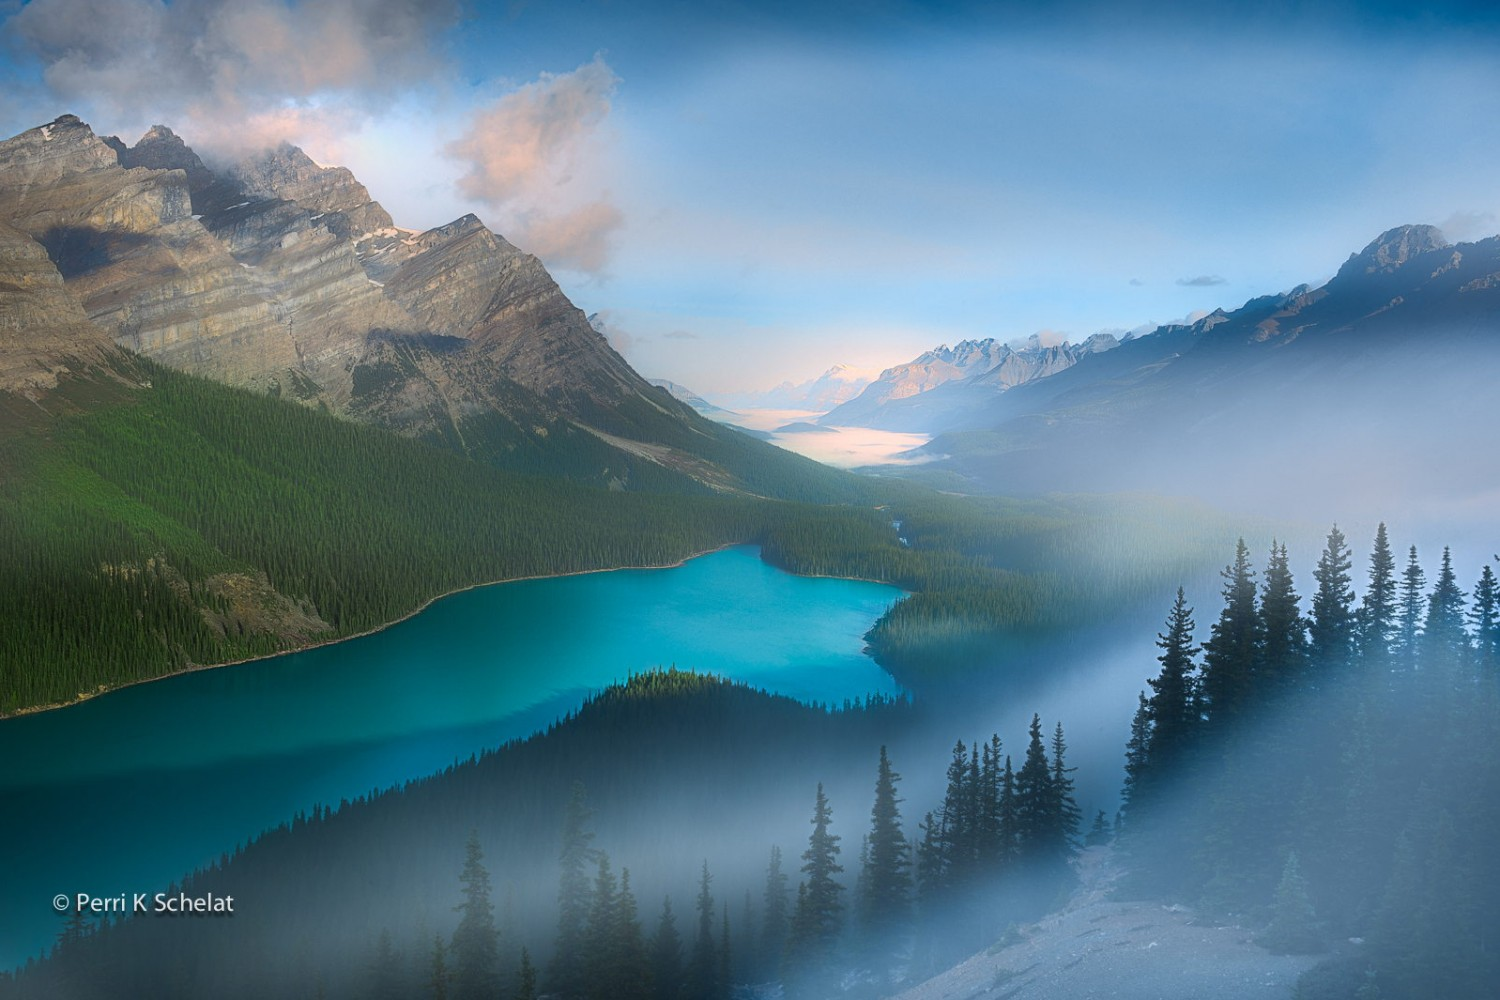 15 Amazing Women Landscape Photographers You Should Follow Right Now